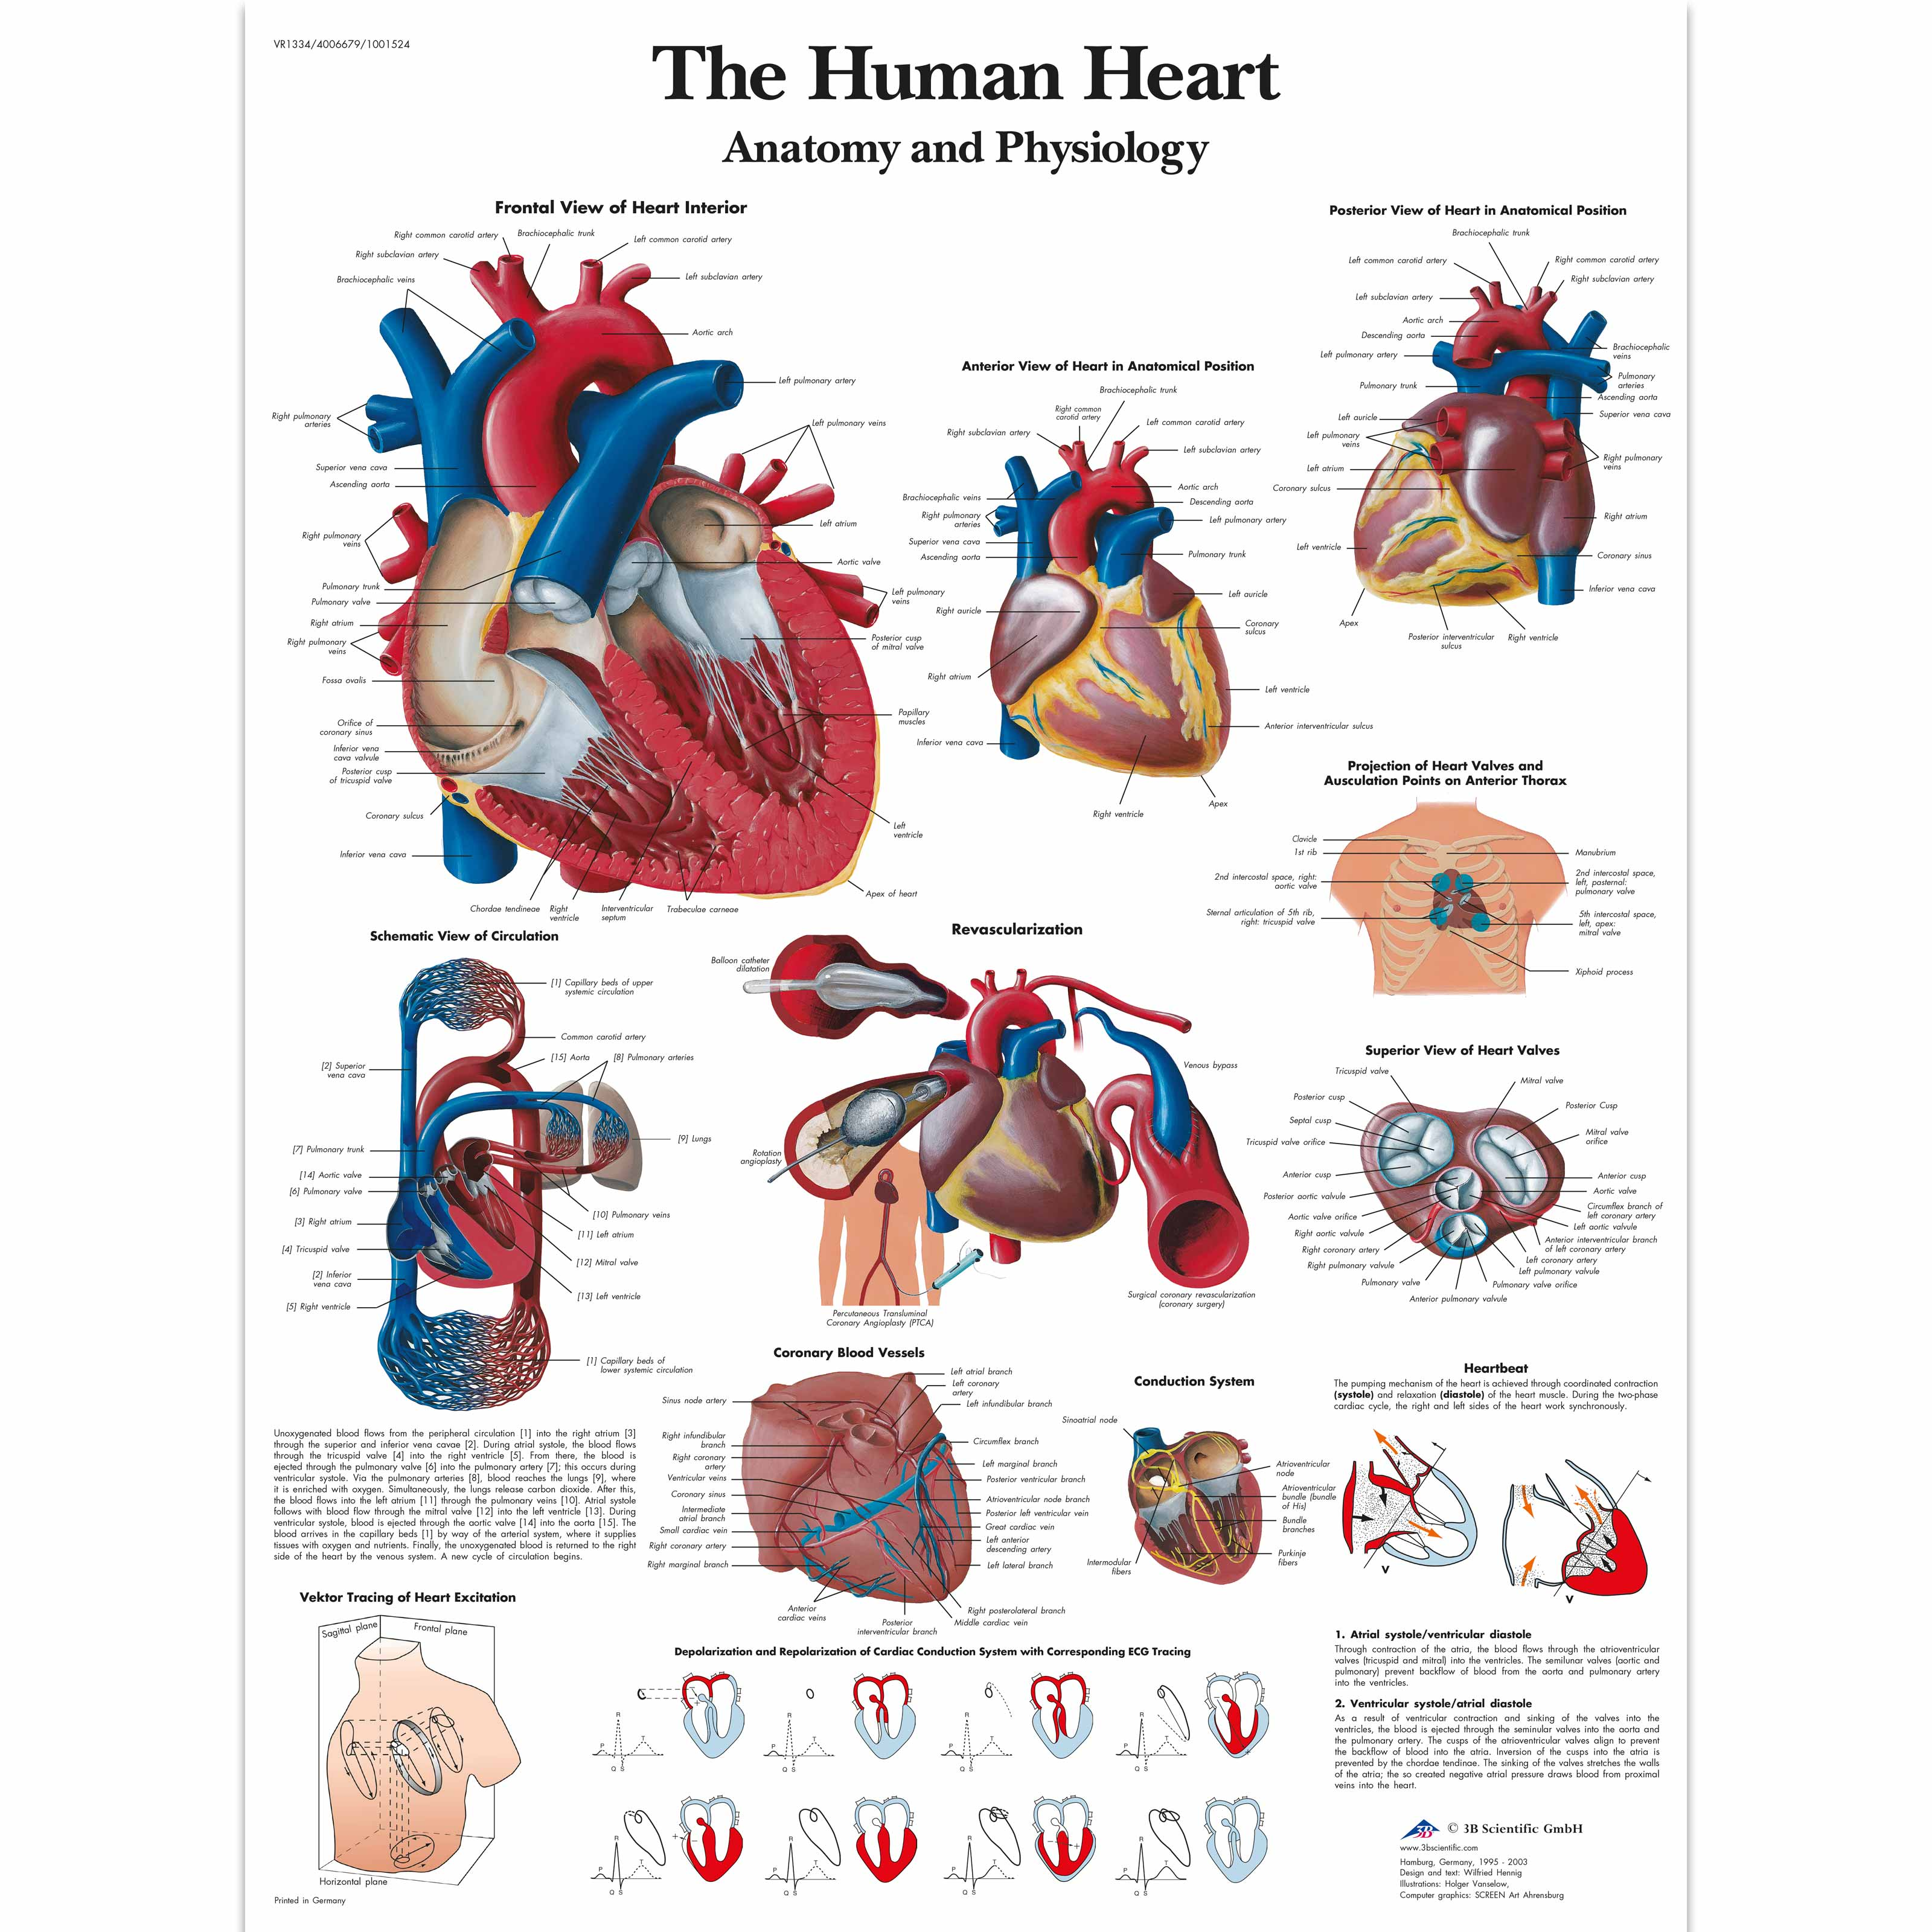 Kettler Mini Stepper likewise Human Anatomy Kidney Diagram Human Anatomy Diagram Kidney Internal Organs Health Medicine in addition Productos as well Stripping Membranes Induce Labor Effectiveness likewise Vasos Sanguineos. on health circulatory system